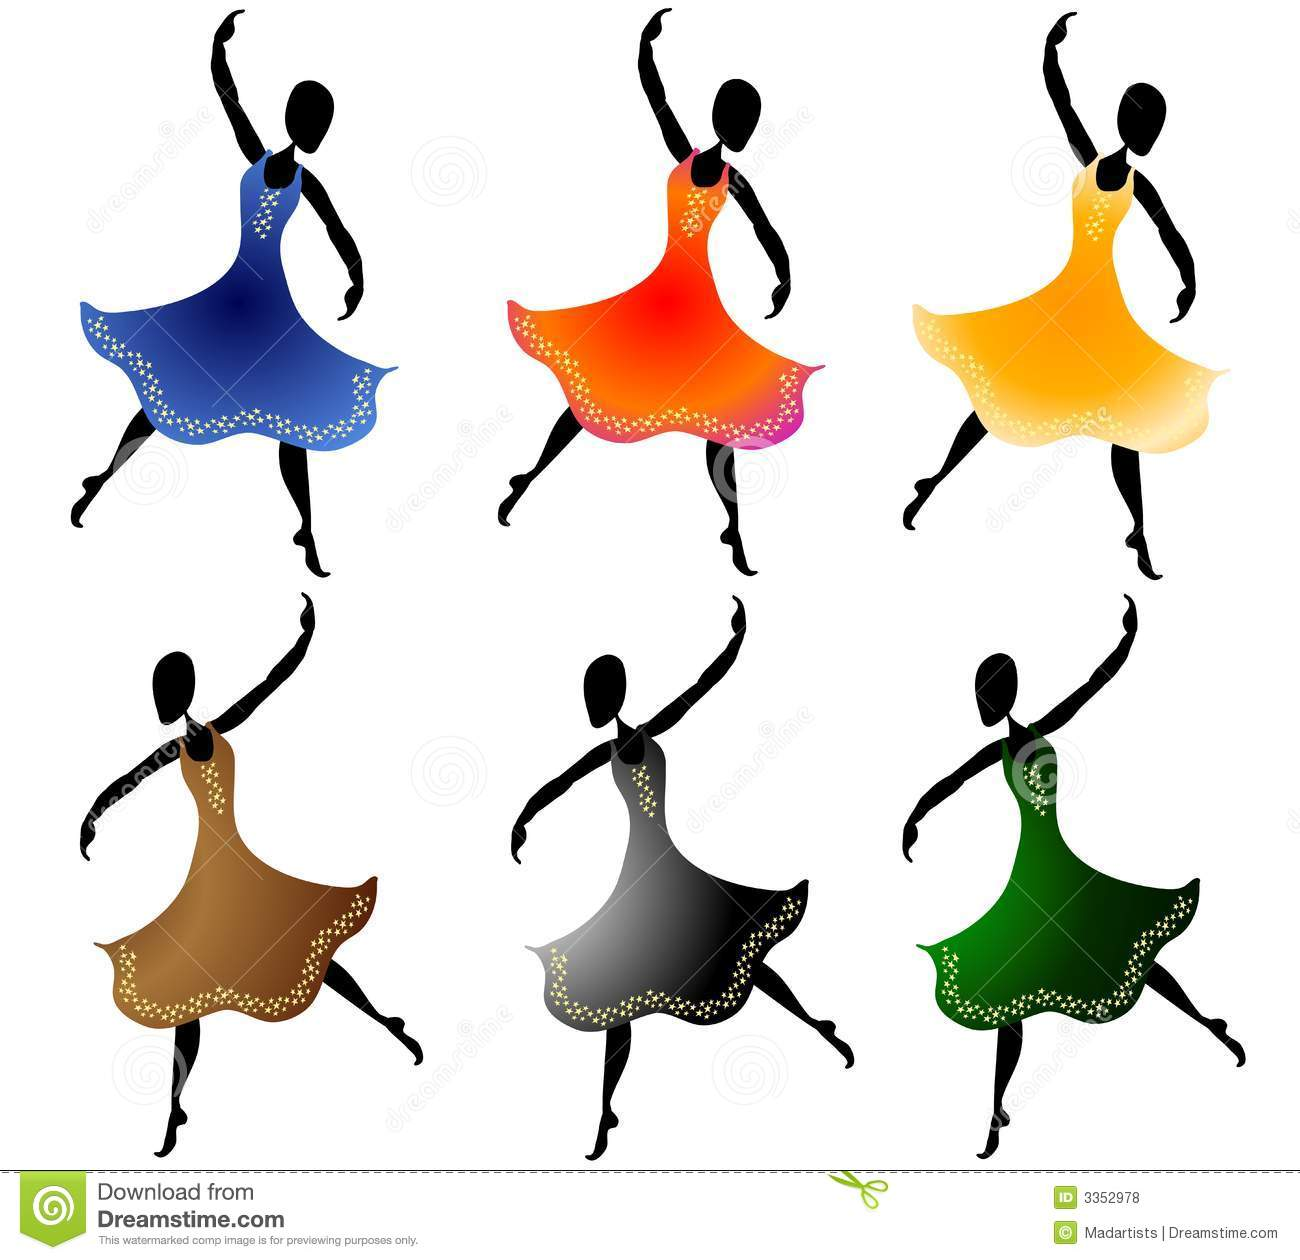 various women dancing clip art stock illustration illustration of rh dreamstime com free stock clip art rx free stock clip art rx